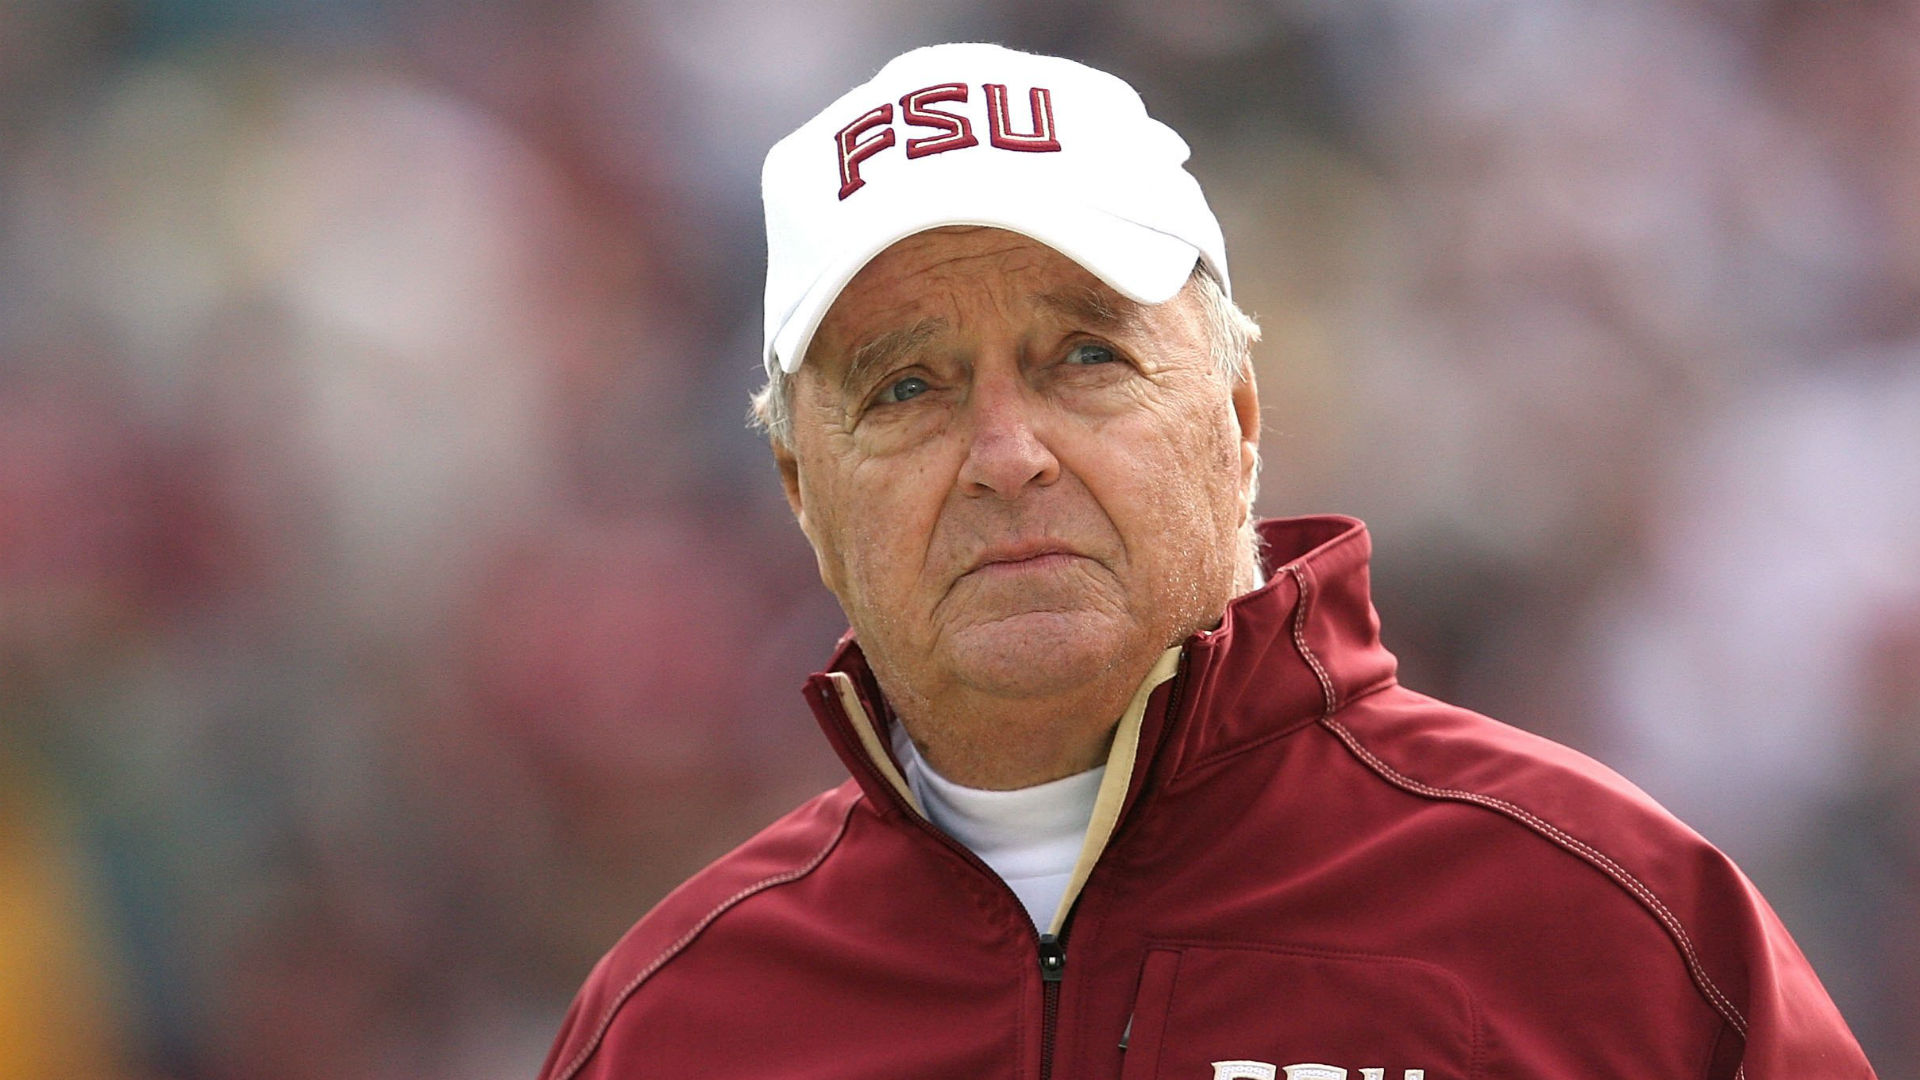 Bobby Bowden, 89, released from hospital   Sporting News